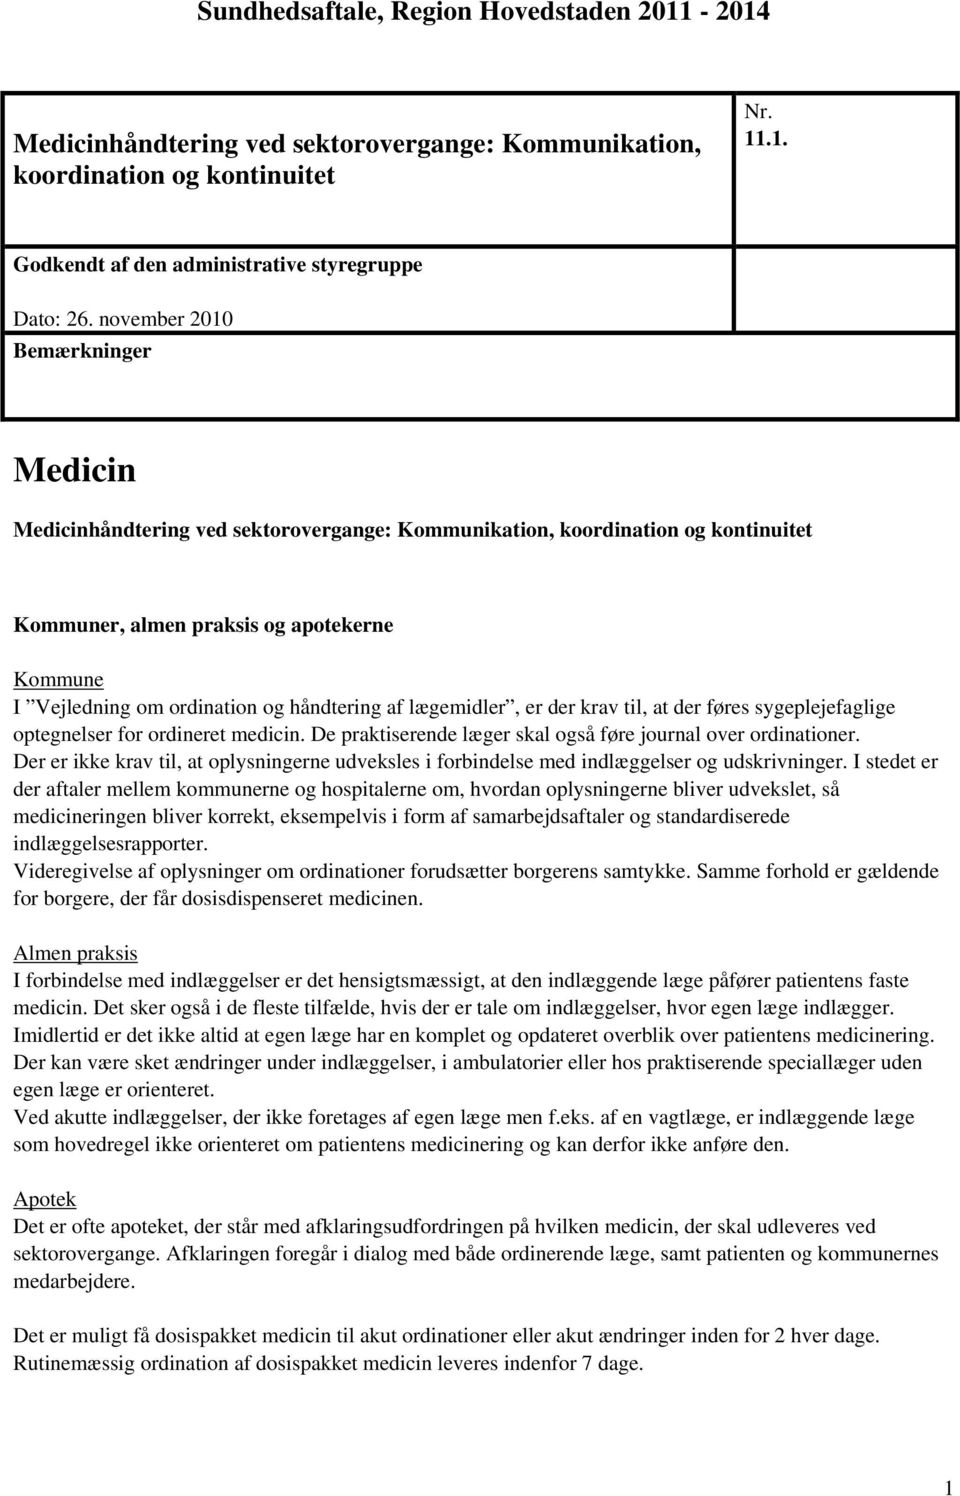 håndtering af lægemidler, er der krav til, at der føres sygeplejefaglige optegnelser for ordineret medicin. De praktiserende læger skal også føre journal over ordinationer.